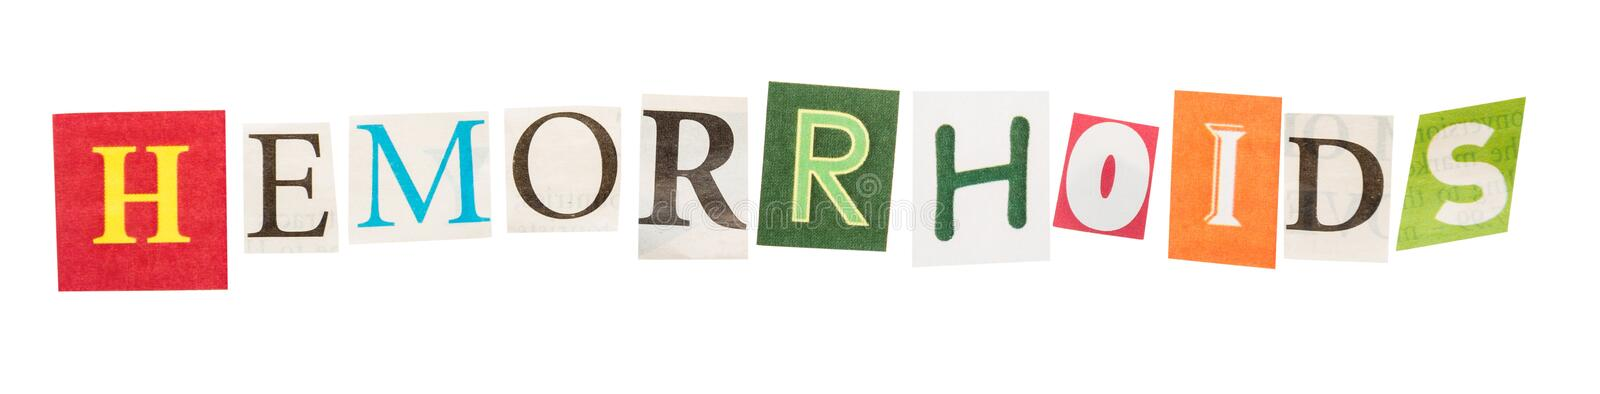 Hemorrhoids cut out of letters. Word hemorrhoids cut out of letters set stock images